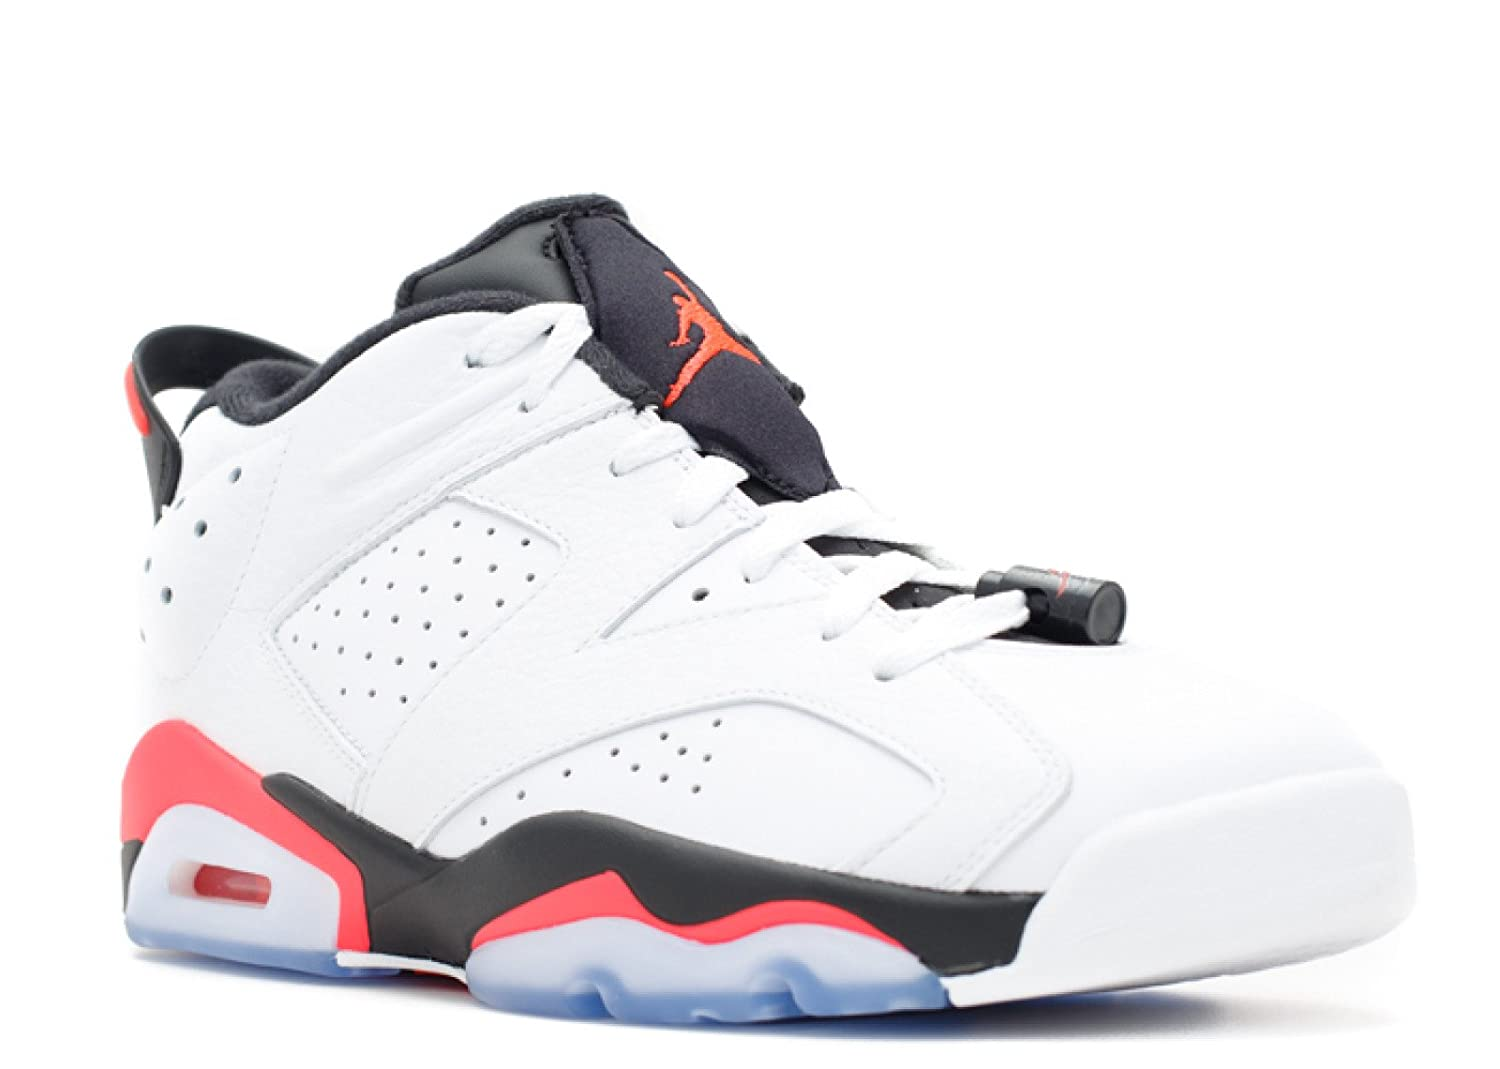 sports shoes 943e8 758a0 NIKE Air Jordan 6 Retro Low 304401-123 White/Infrared 23/Black Men's Shoes  (Size 14)